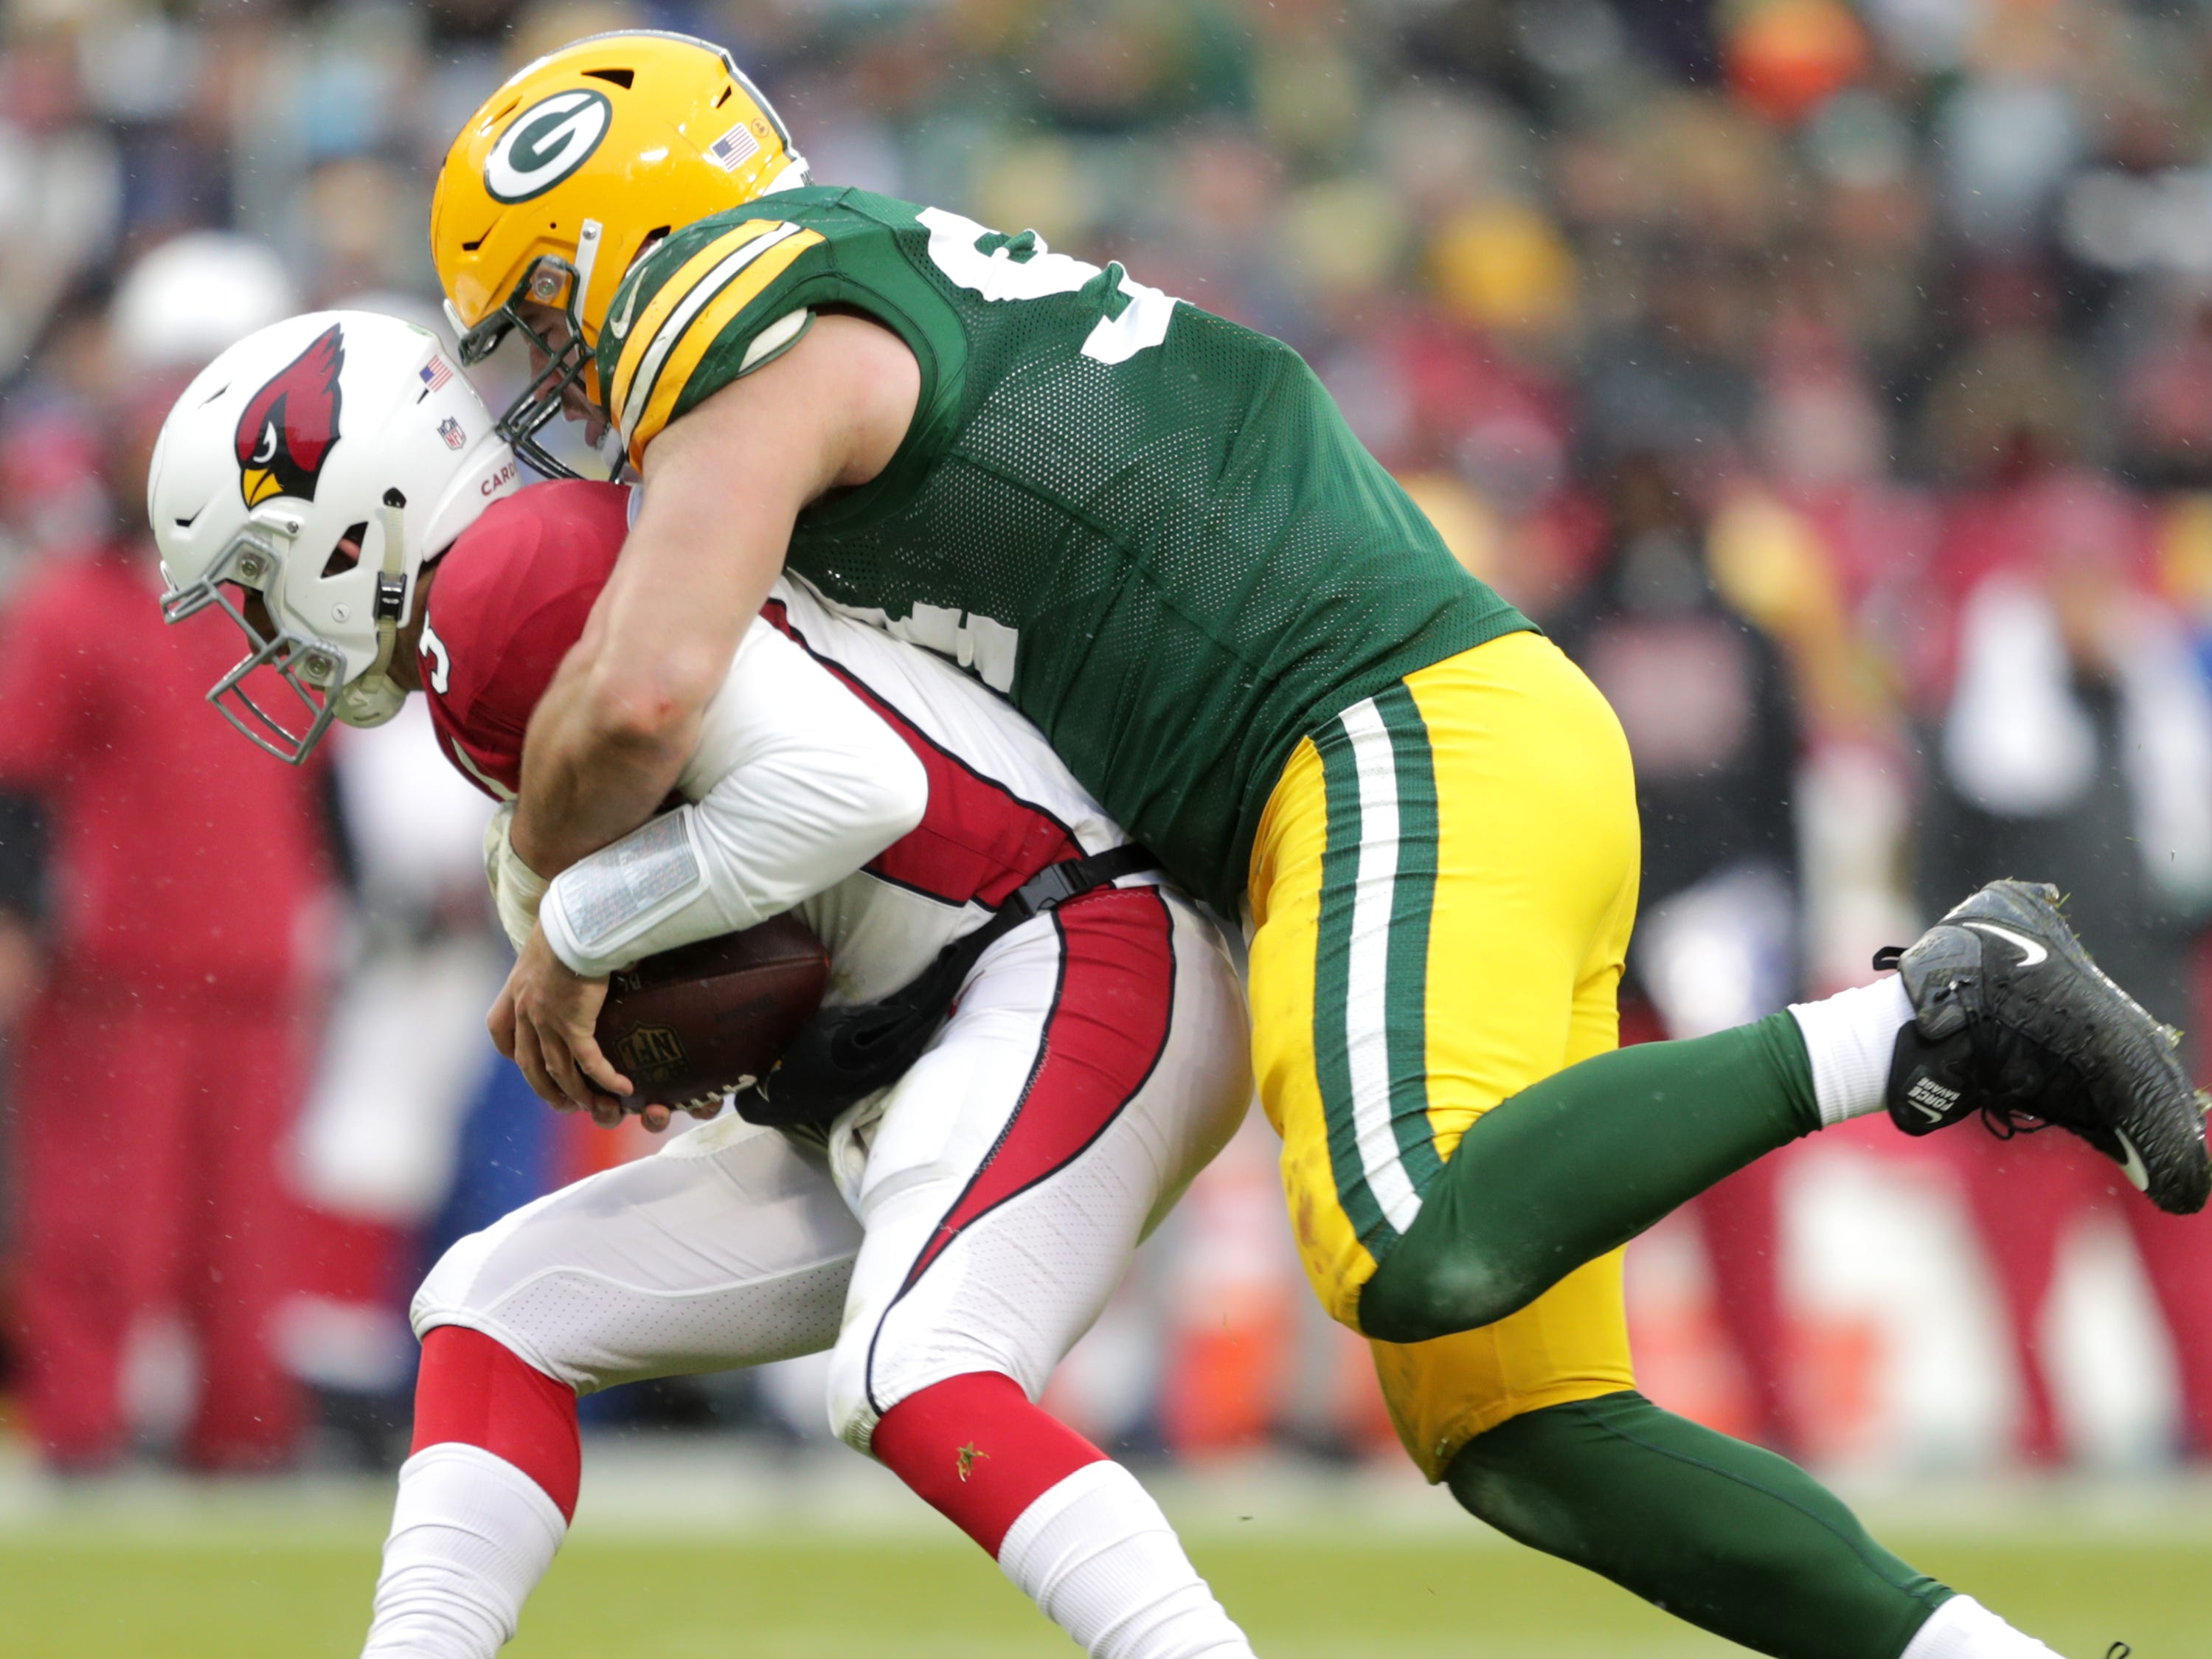 Green Bay Packers defensive end Dean Lowry sacks Arizona Cardinals quarterback Josh Rosenmduring their football game on Sunday, December 2, 2018, at Lambeau Field in Green Bay, Wis. Arizona defeated Green Bay 20 to 17. Wm. Glasheen/USA TODAY NETWORK-Wisconsin.